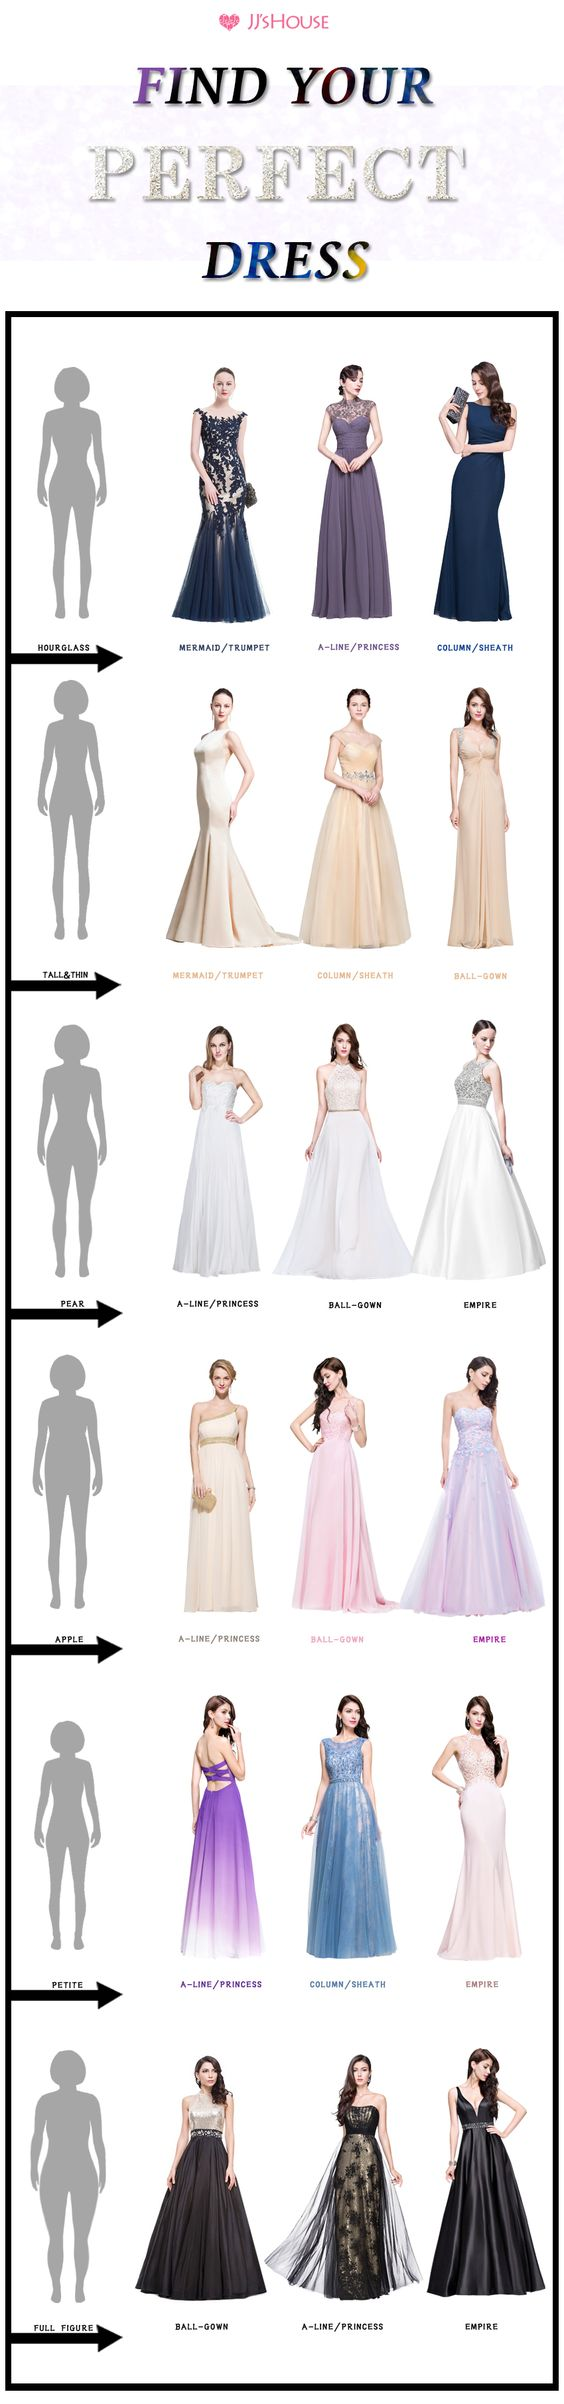 Find The Perfect Dress For Your Body Shape Choosing Best To Fit And